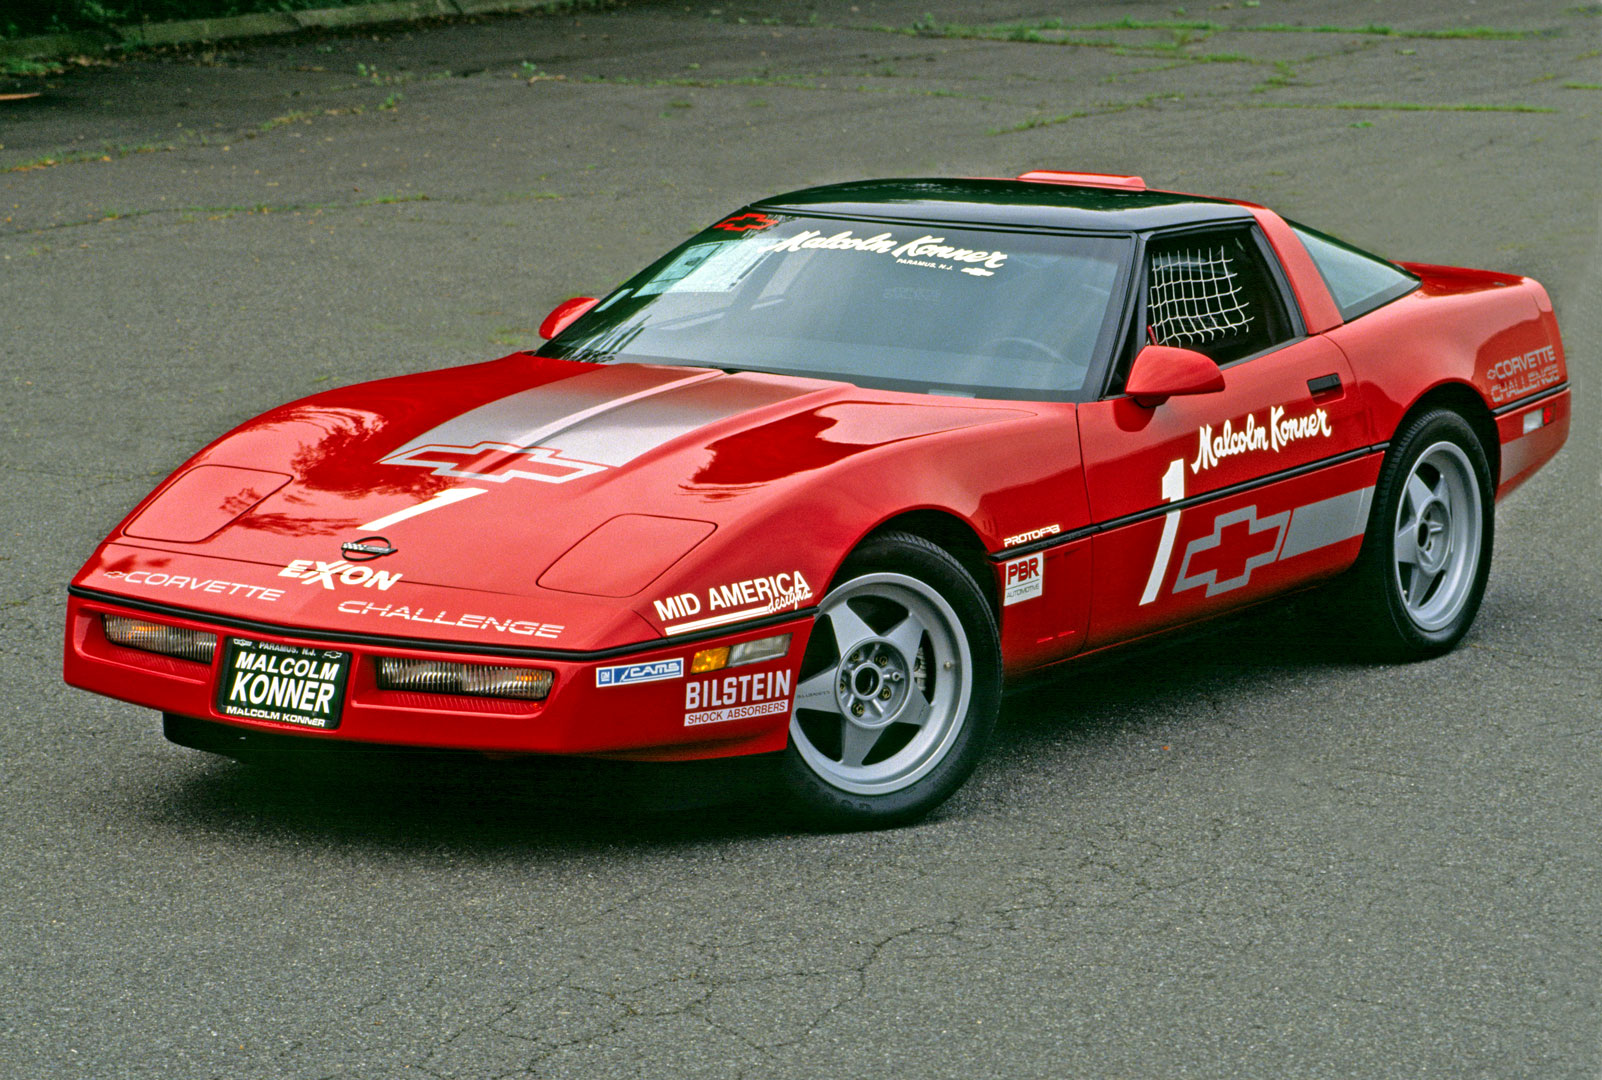 The #1 1988 Corvette Challenge car still owned by Gary Konner, who ordered the first 50 cars for the series while working at Malcolm Konner Chevrolet. Never raced, it remains a time capsule with 100 miles on the clock.